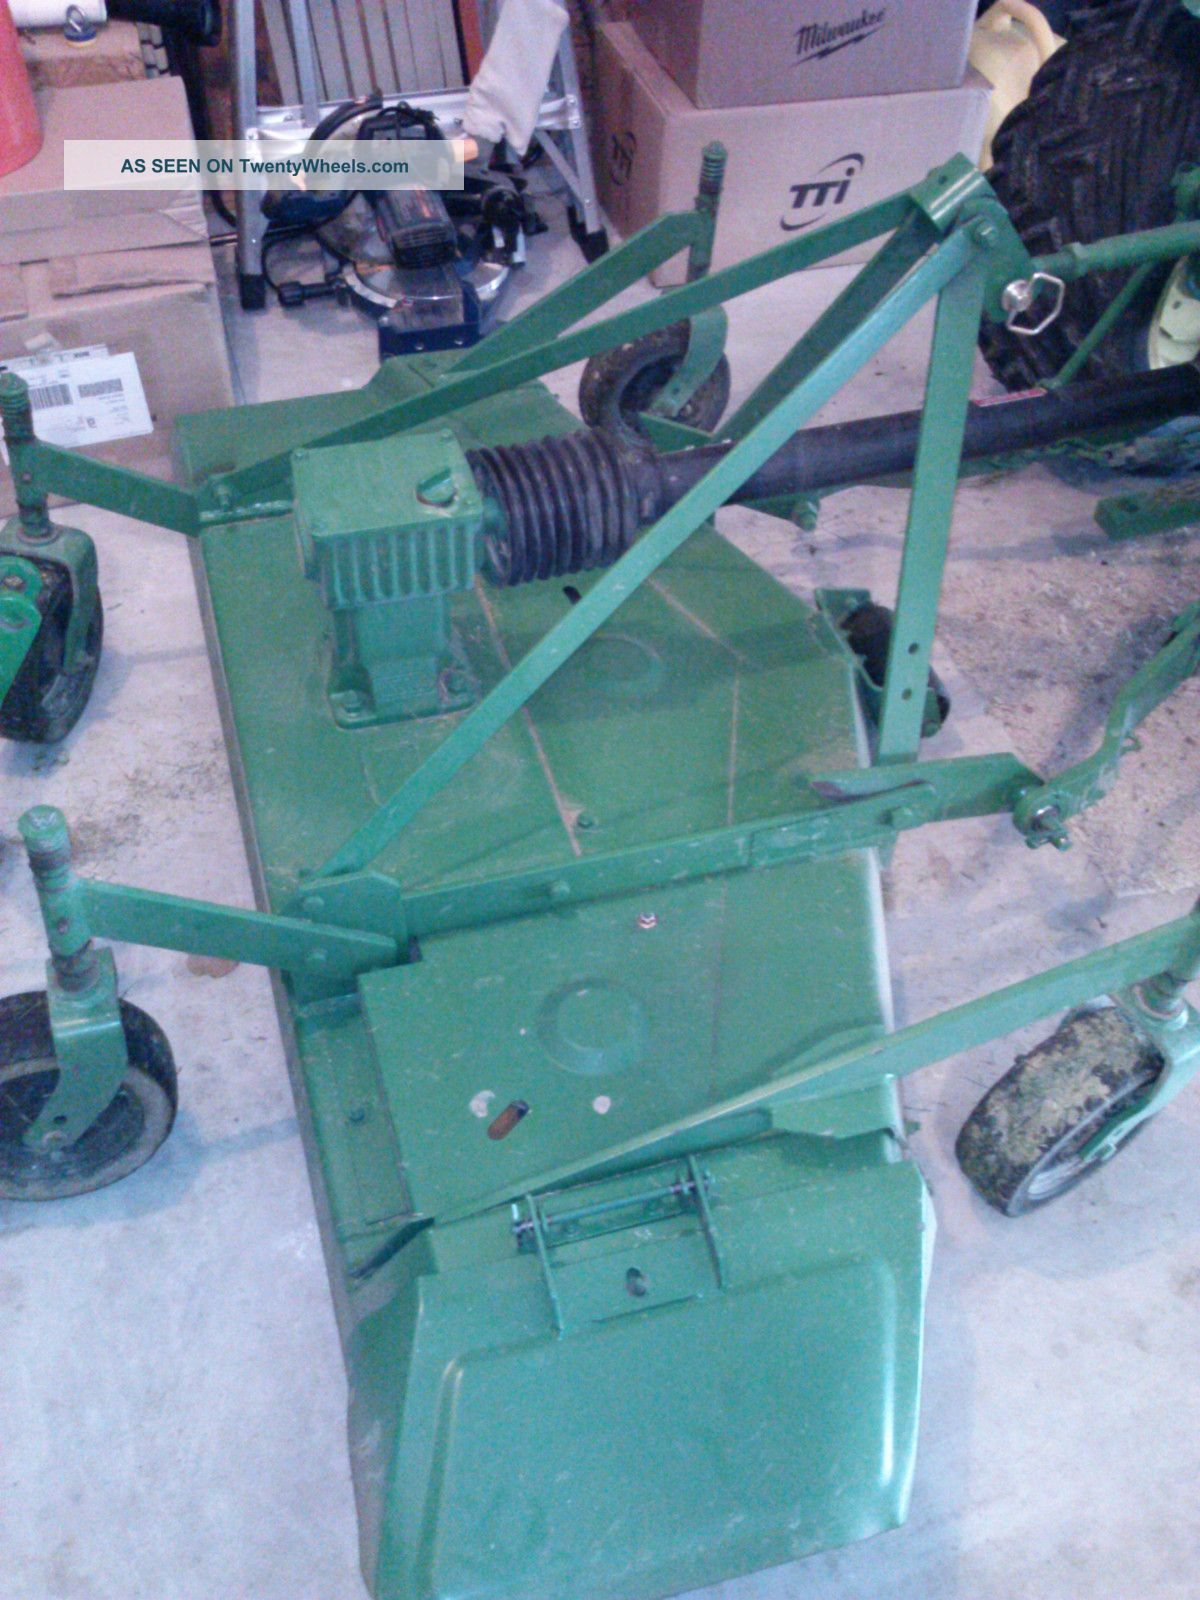 John Deere 650 Diesel Tractor With Attachments